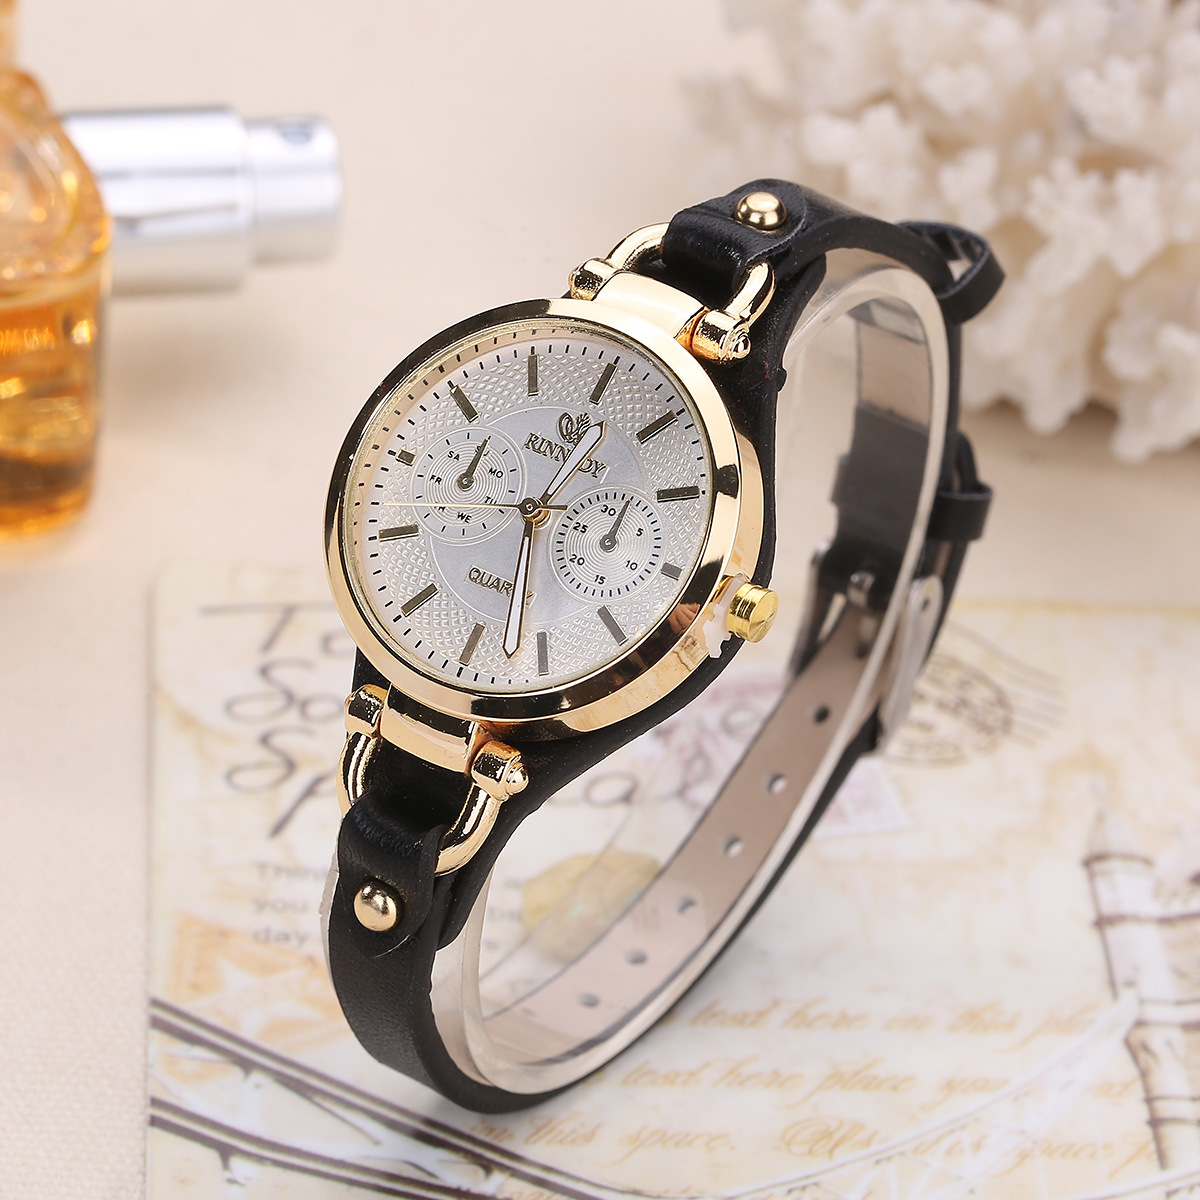 Fashion Brand Women Watches Rivet Luxury Thin Leather Gold Wristwatches Ladies Sport Quartz Watch relogio feminino Ceasuri reloj